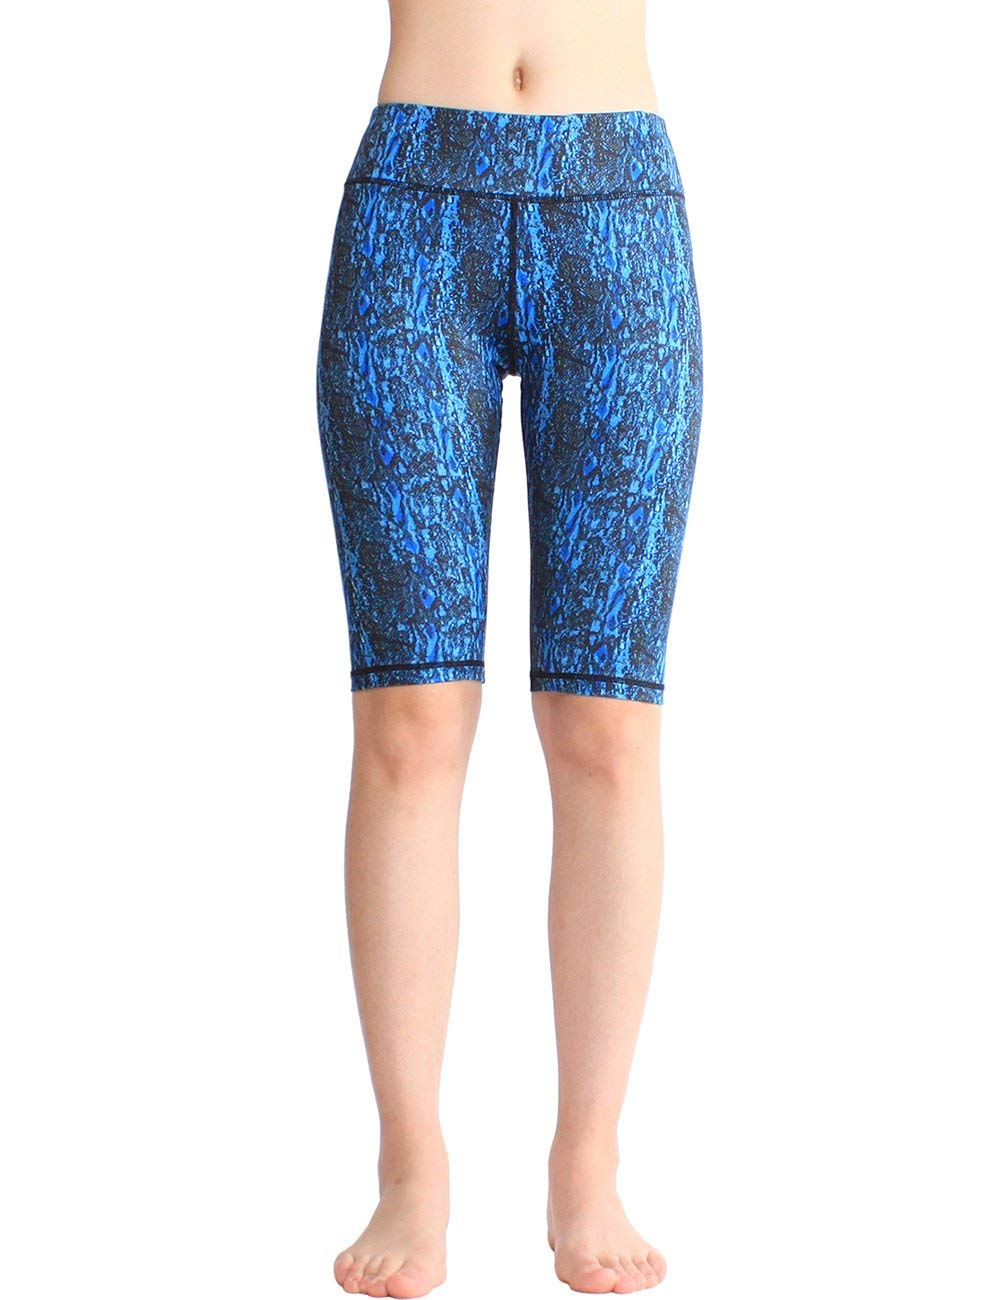 0ec26268bb Women's Workout Shorts Performance Printed Half Tights Leggings Shorts for  Running Yoga Fitness